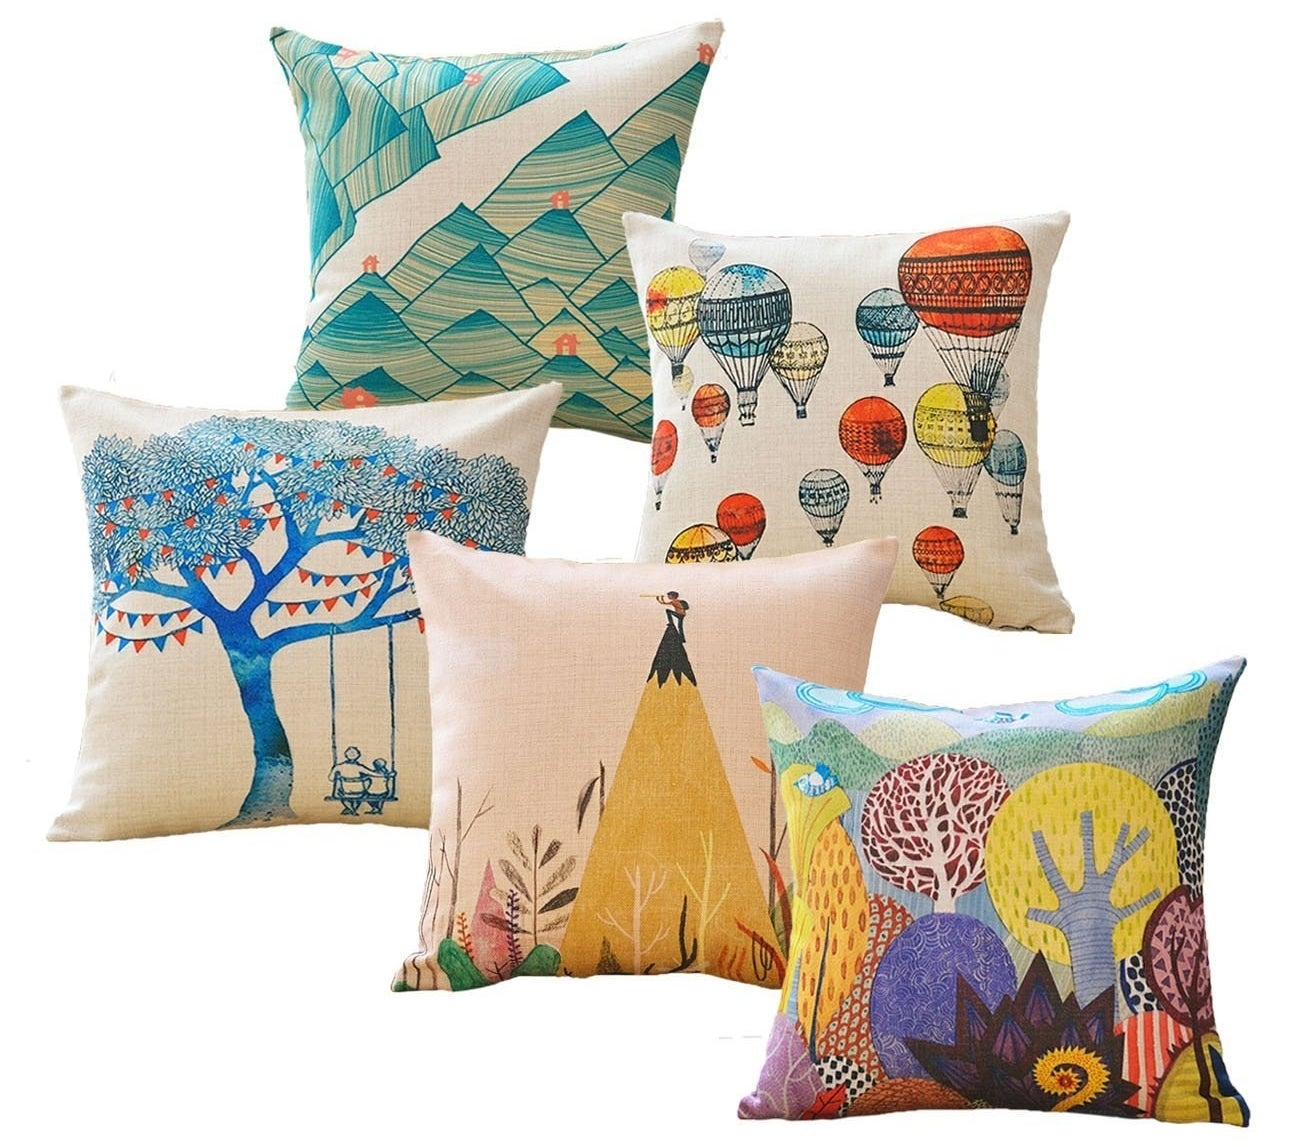 five throw pillows with colorful designs on them